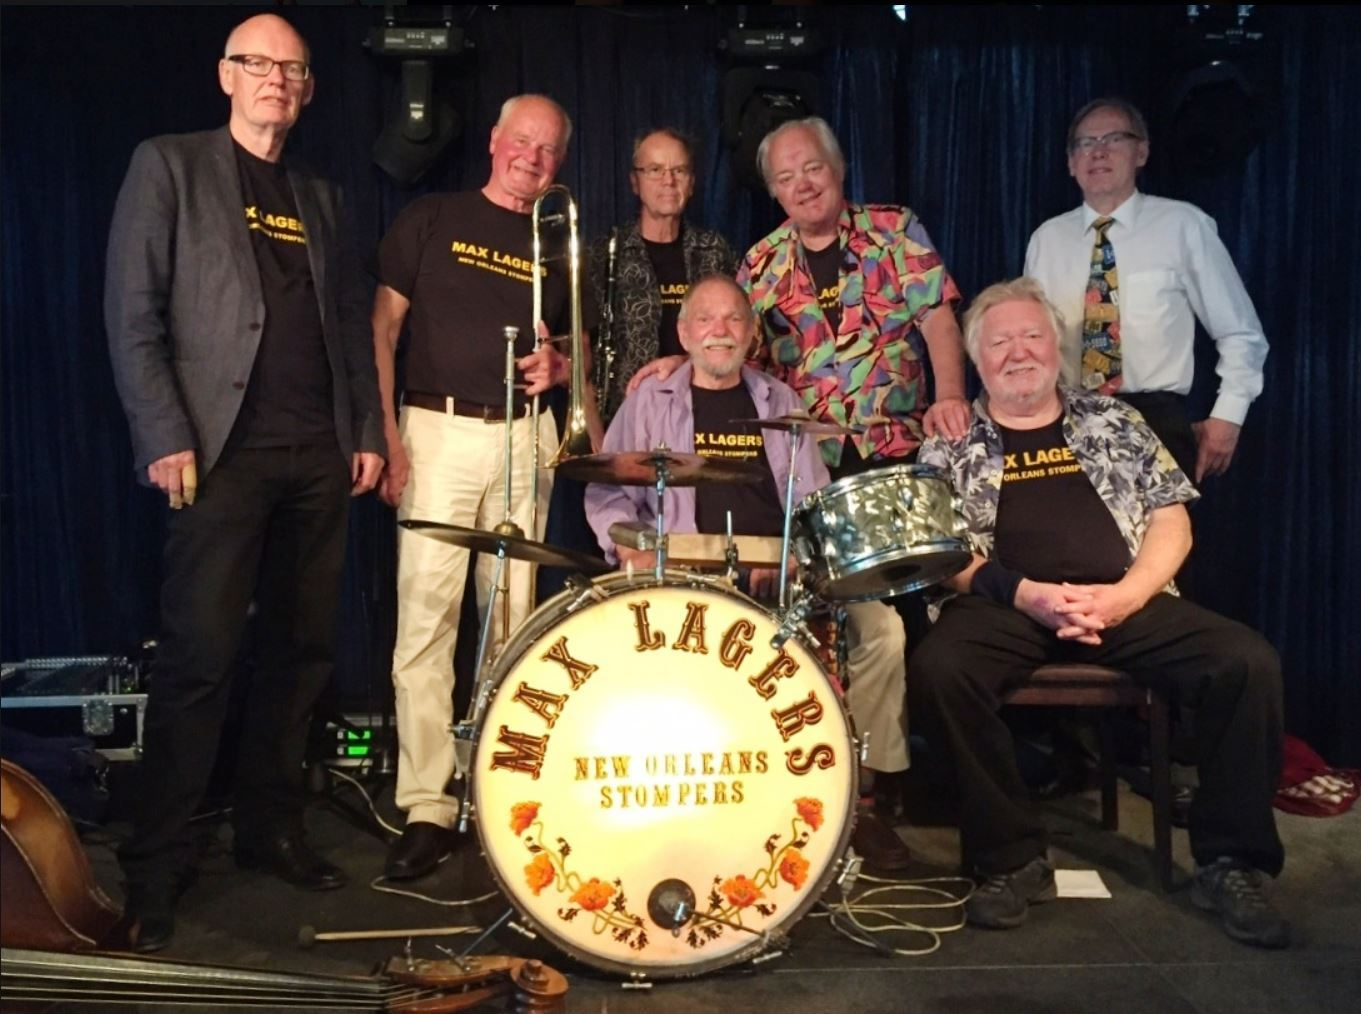 Max Lager's New Orleans Stompers - Folkets Hus Lilla Sal